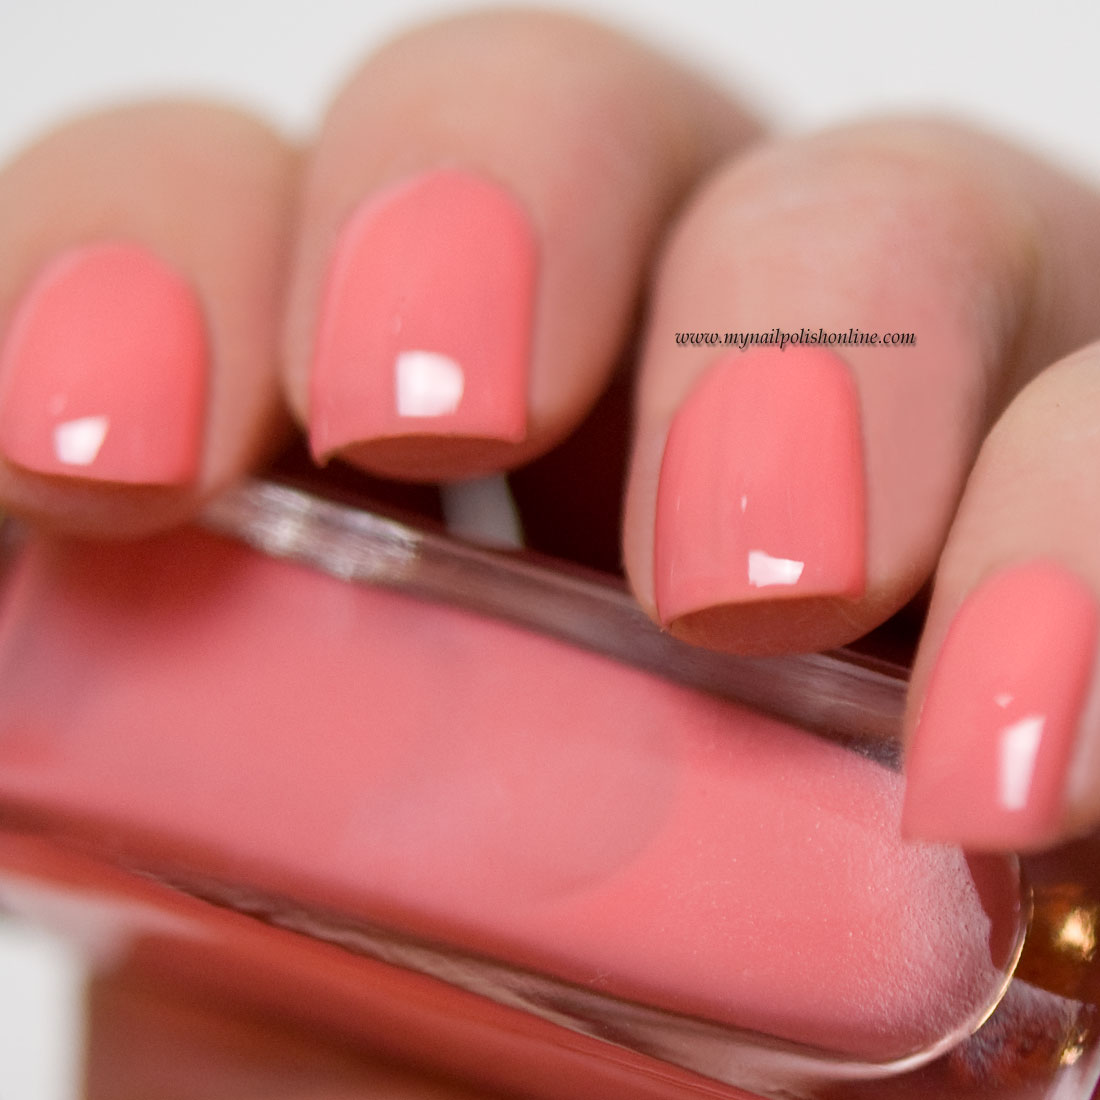 Cotton Candy Satin Fingernail Polish: My Nail Polish Online